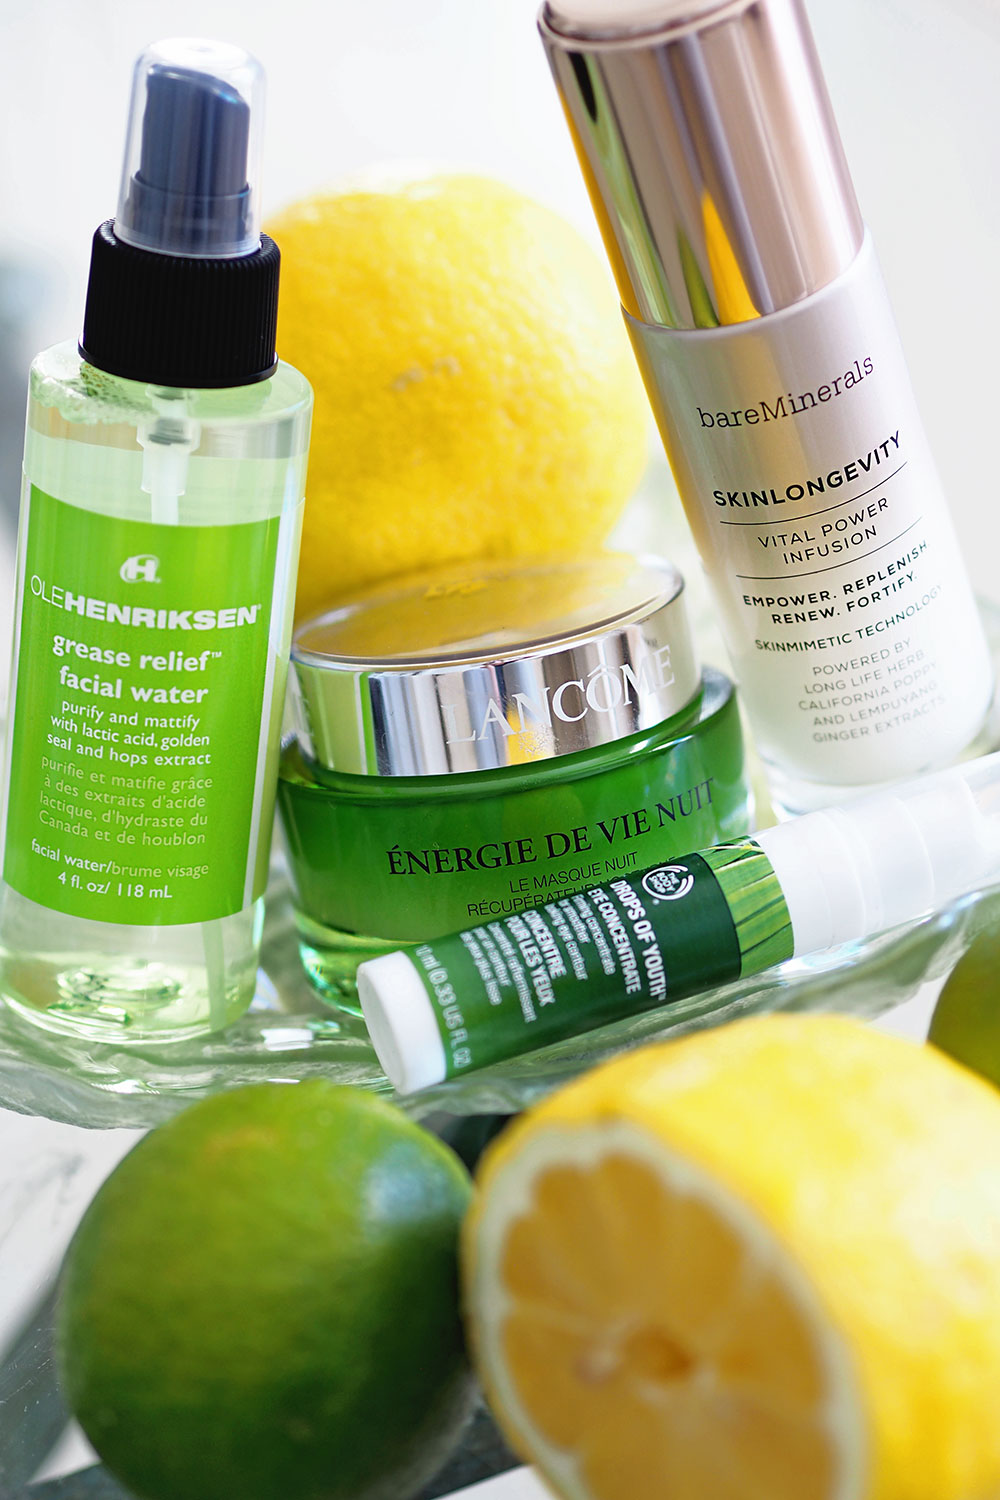 Refreshing-Summer-Skincare-Lancome-ole-henrikeson-the-body-shop-zoe-newlove-beauty-blogger